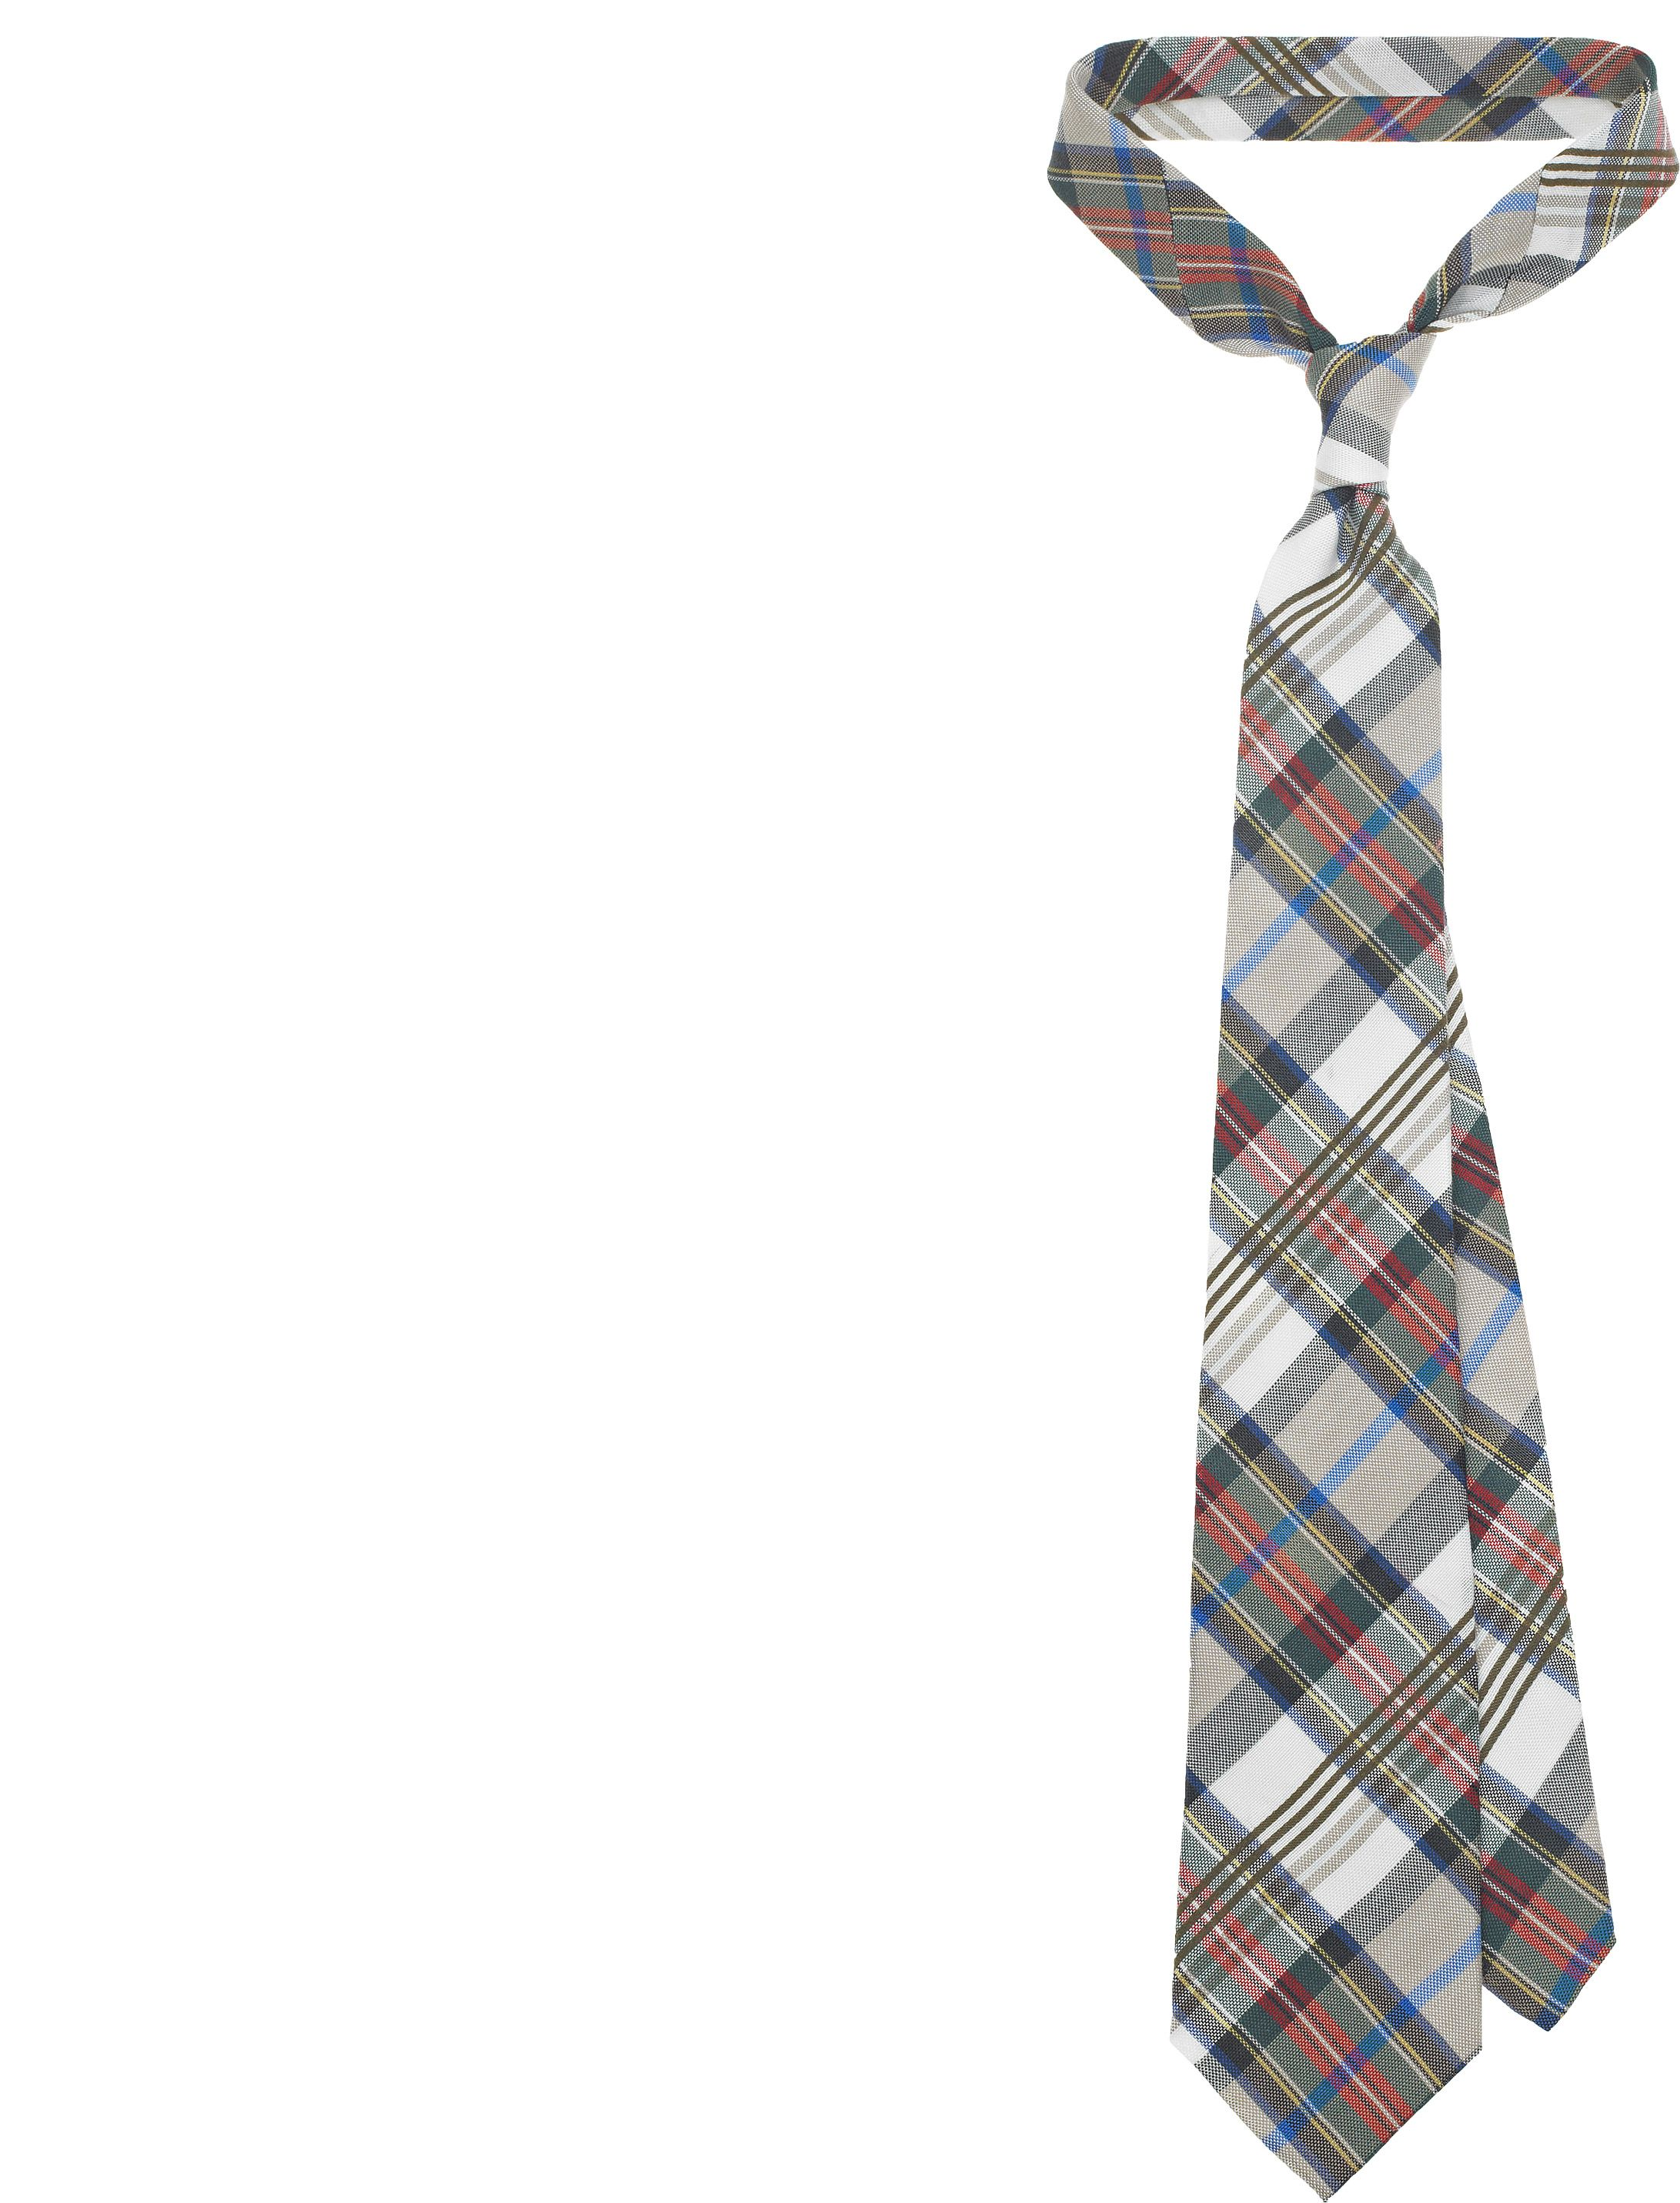 I really like the pattern. - Suitsupply Blue Tie - $45 | Threads ...